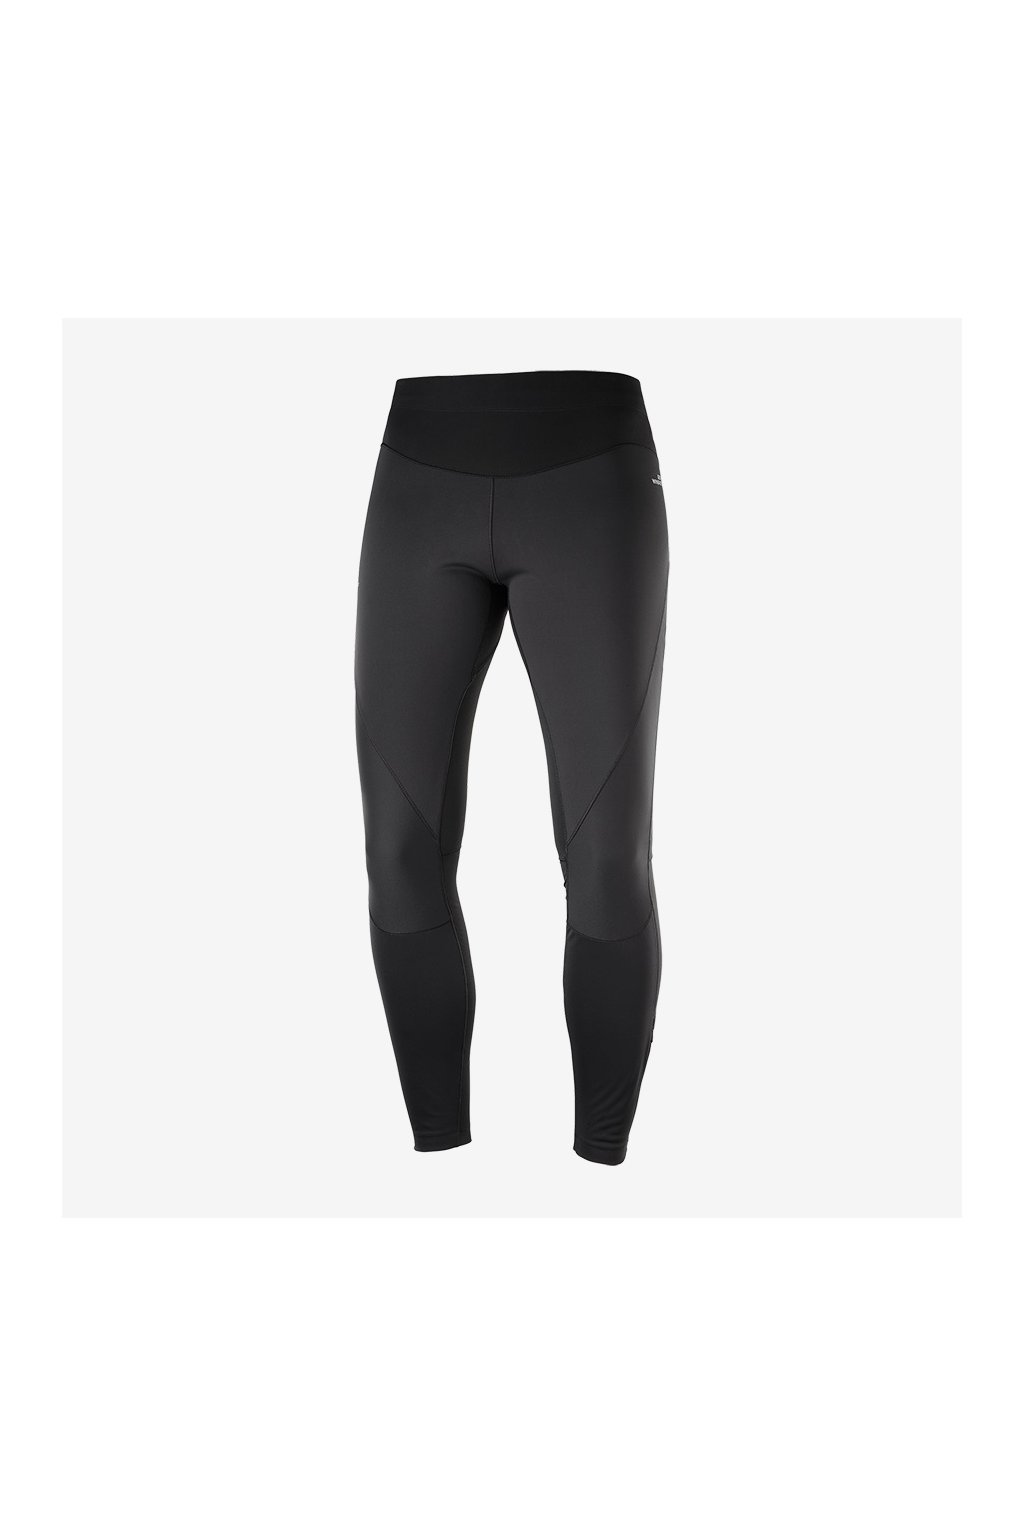 trail runner ws tight w L40362600